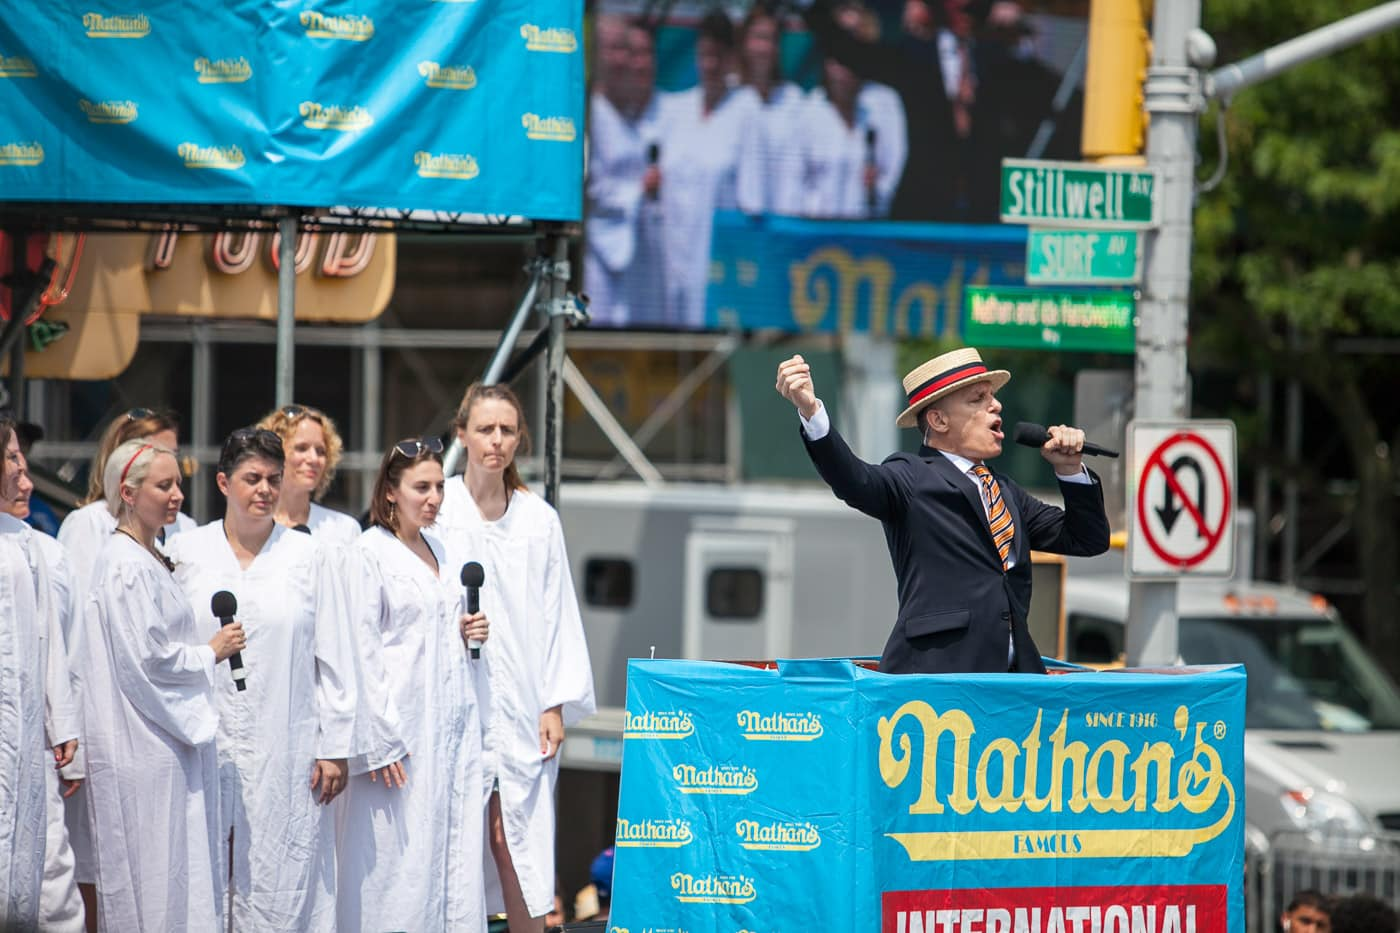 George Shea announces the 2018 Nathan's Famous hot dog eating contest on the Fourth of July at Coney Island in Brooklyn, New York.